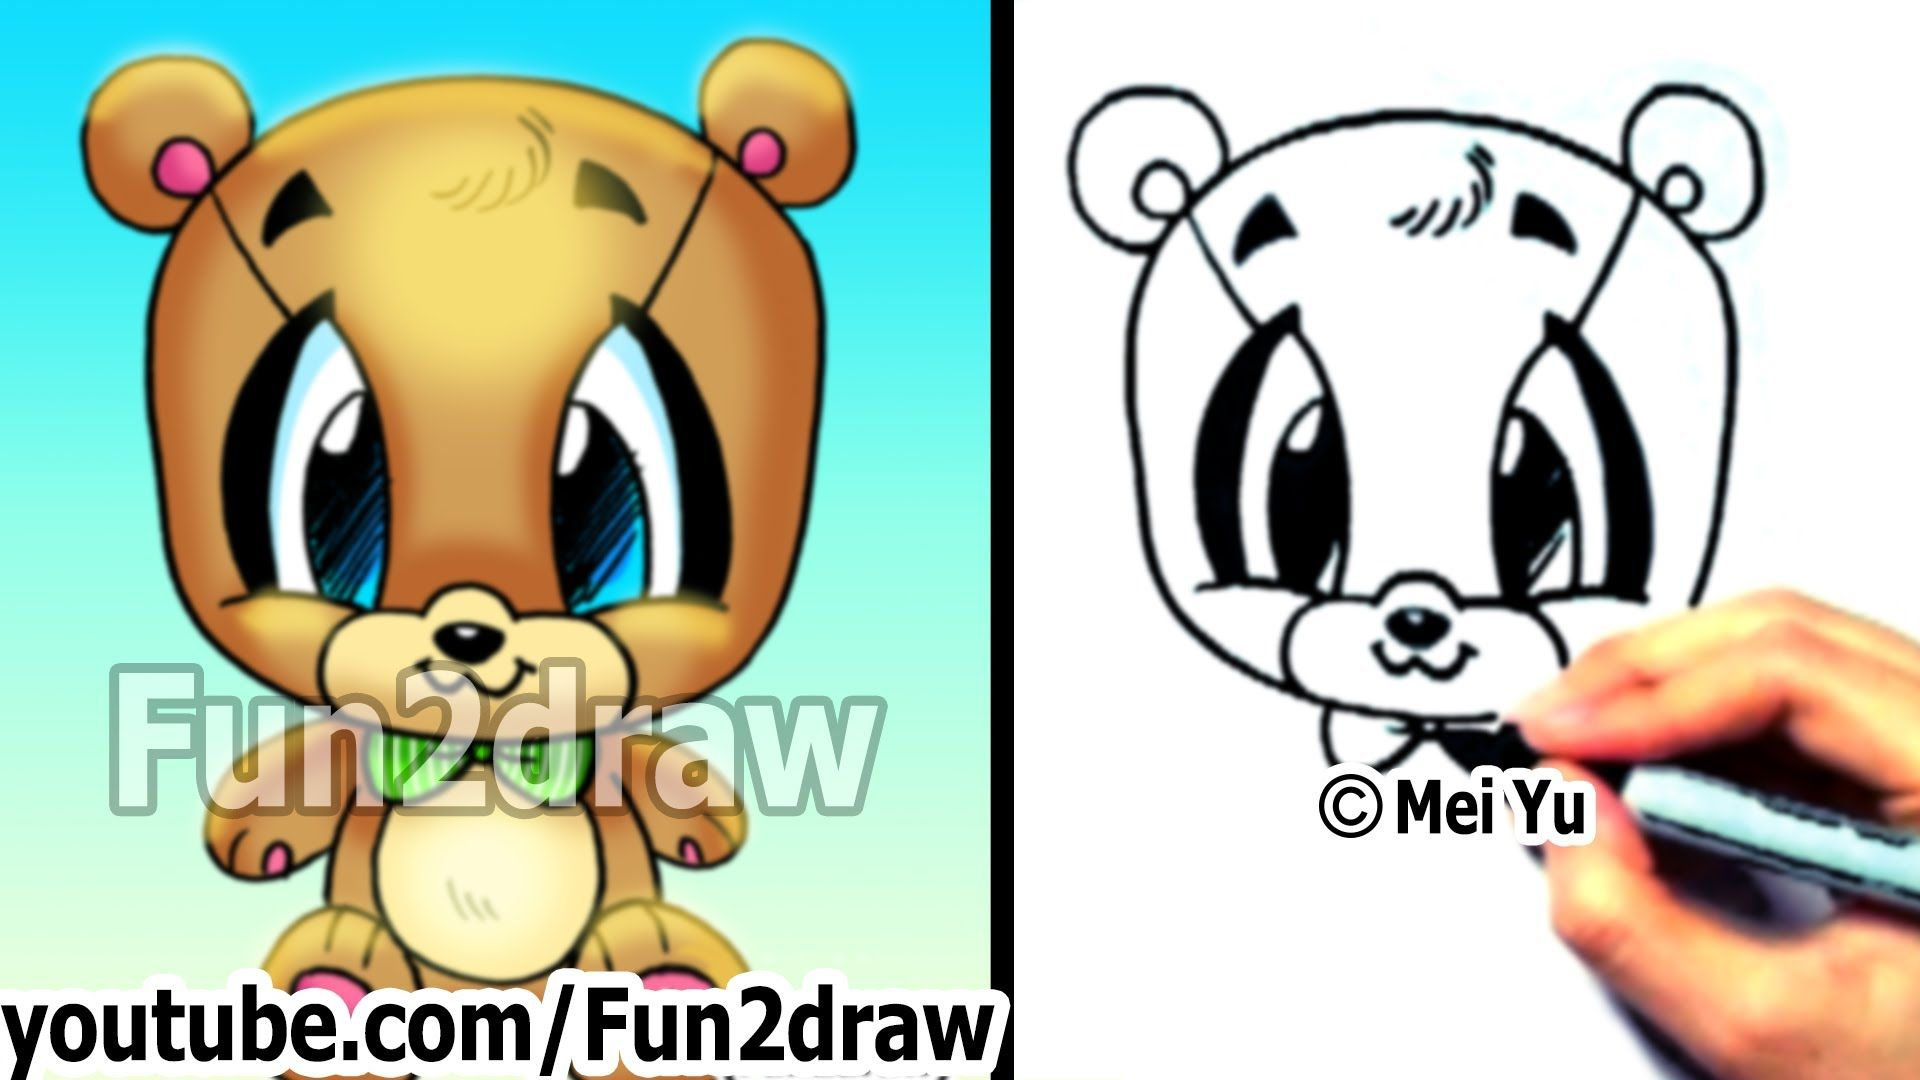 How To Draw Easy How To Draw A Teddy Bear Cute Drawings Cute Art Cute Drawings Cartoon Drawings Of Animals Cute Art